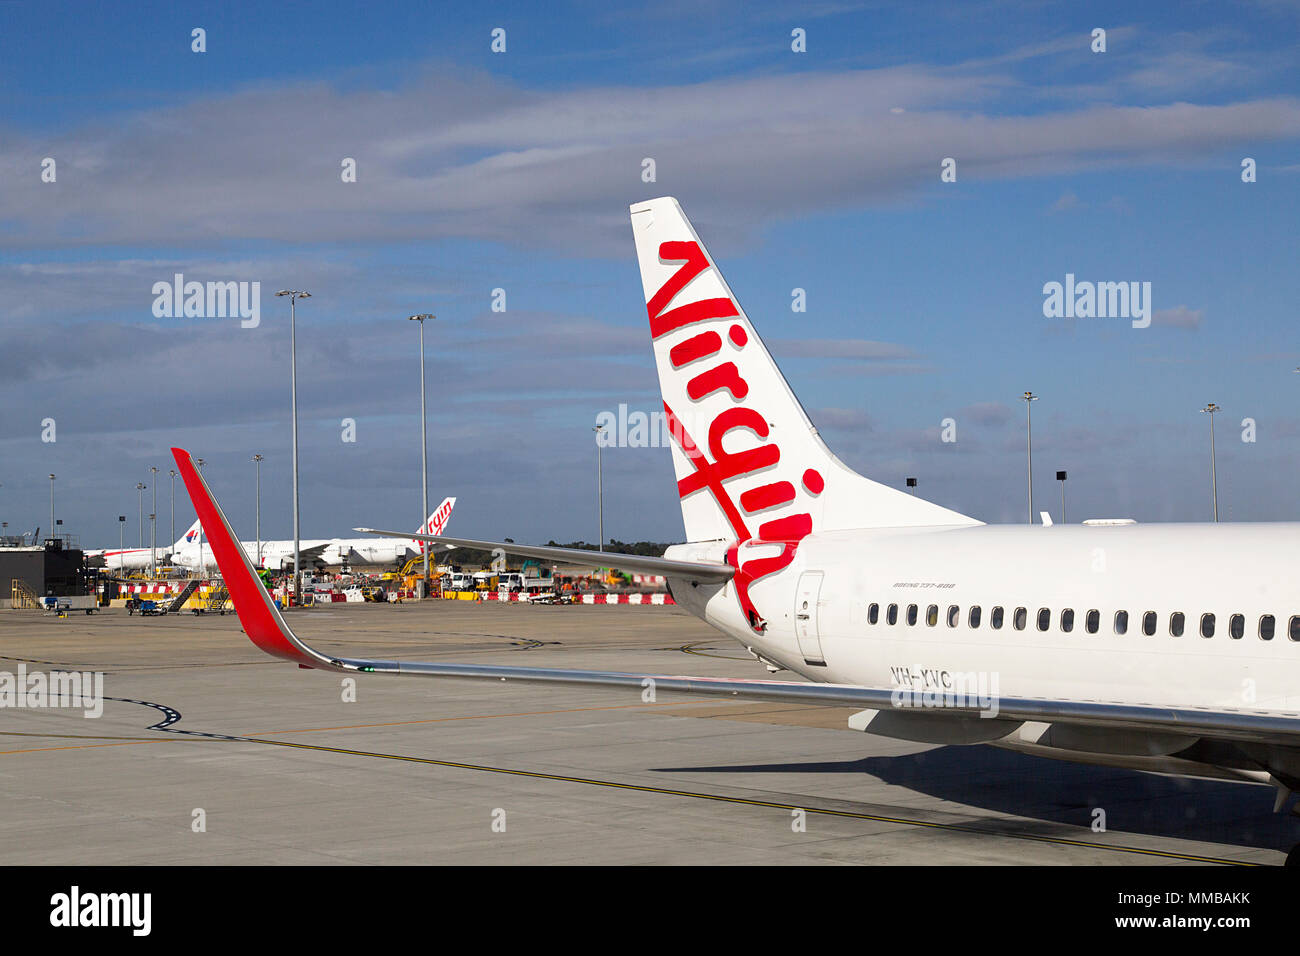 Melbourne, Australia: March 26, 2018: Virgin Australia airplane on the runway at Tullamarine Airport in Melbourne. - Stock Image